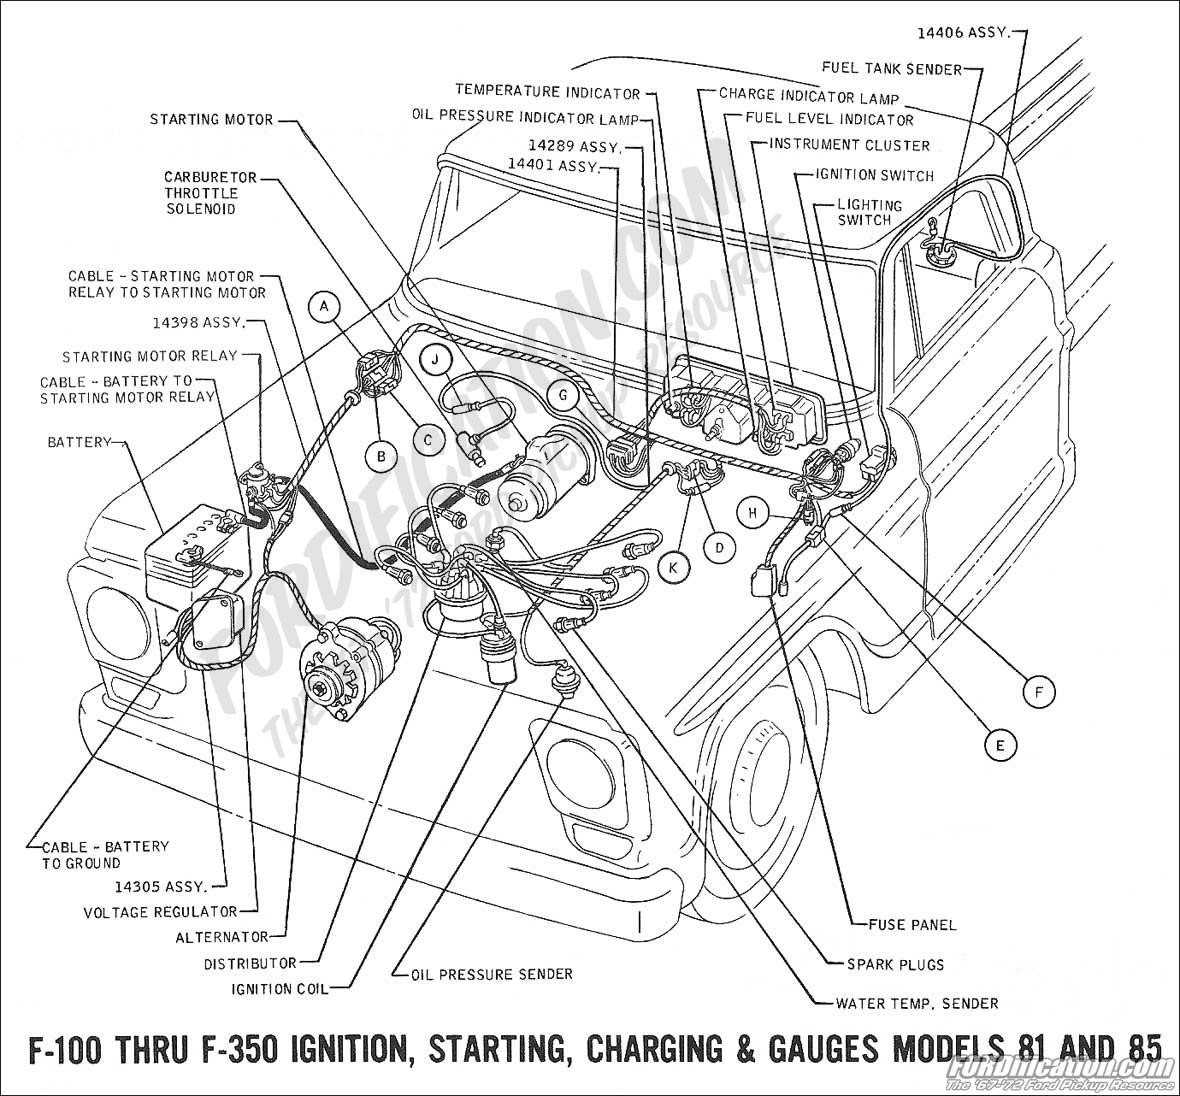 wiring 1969charging 69 f100 wiring diagram 1973 ford f100 wiring diagram \u2022 wiring 1964 Ford Fairlane at crackthecode.co